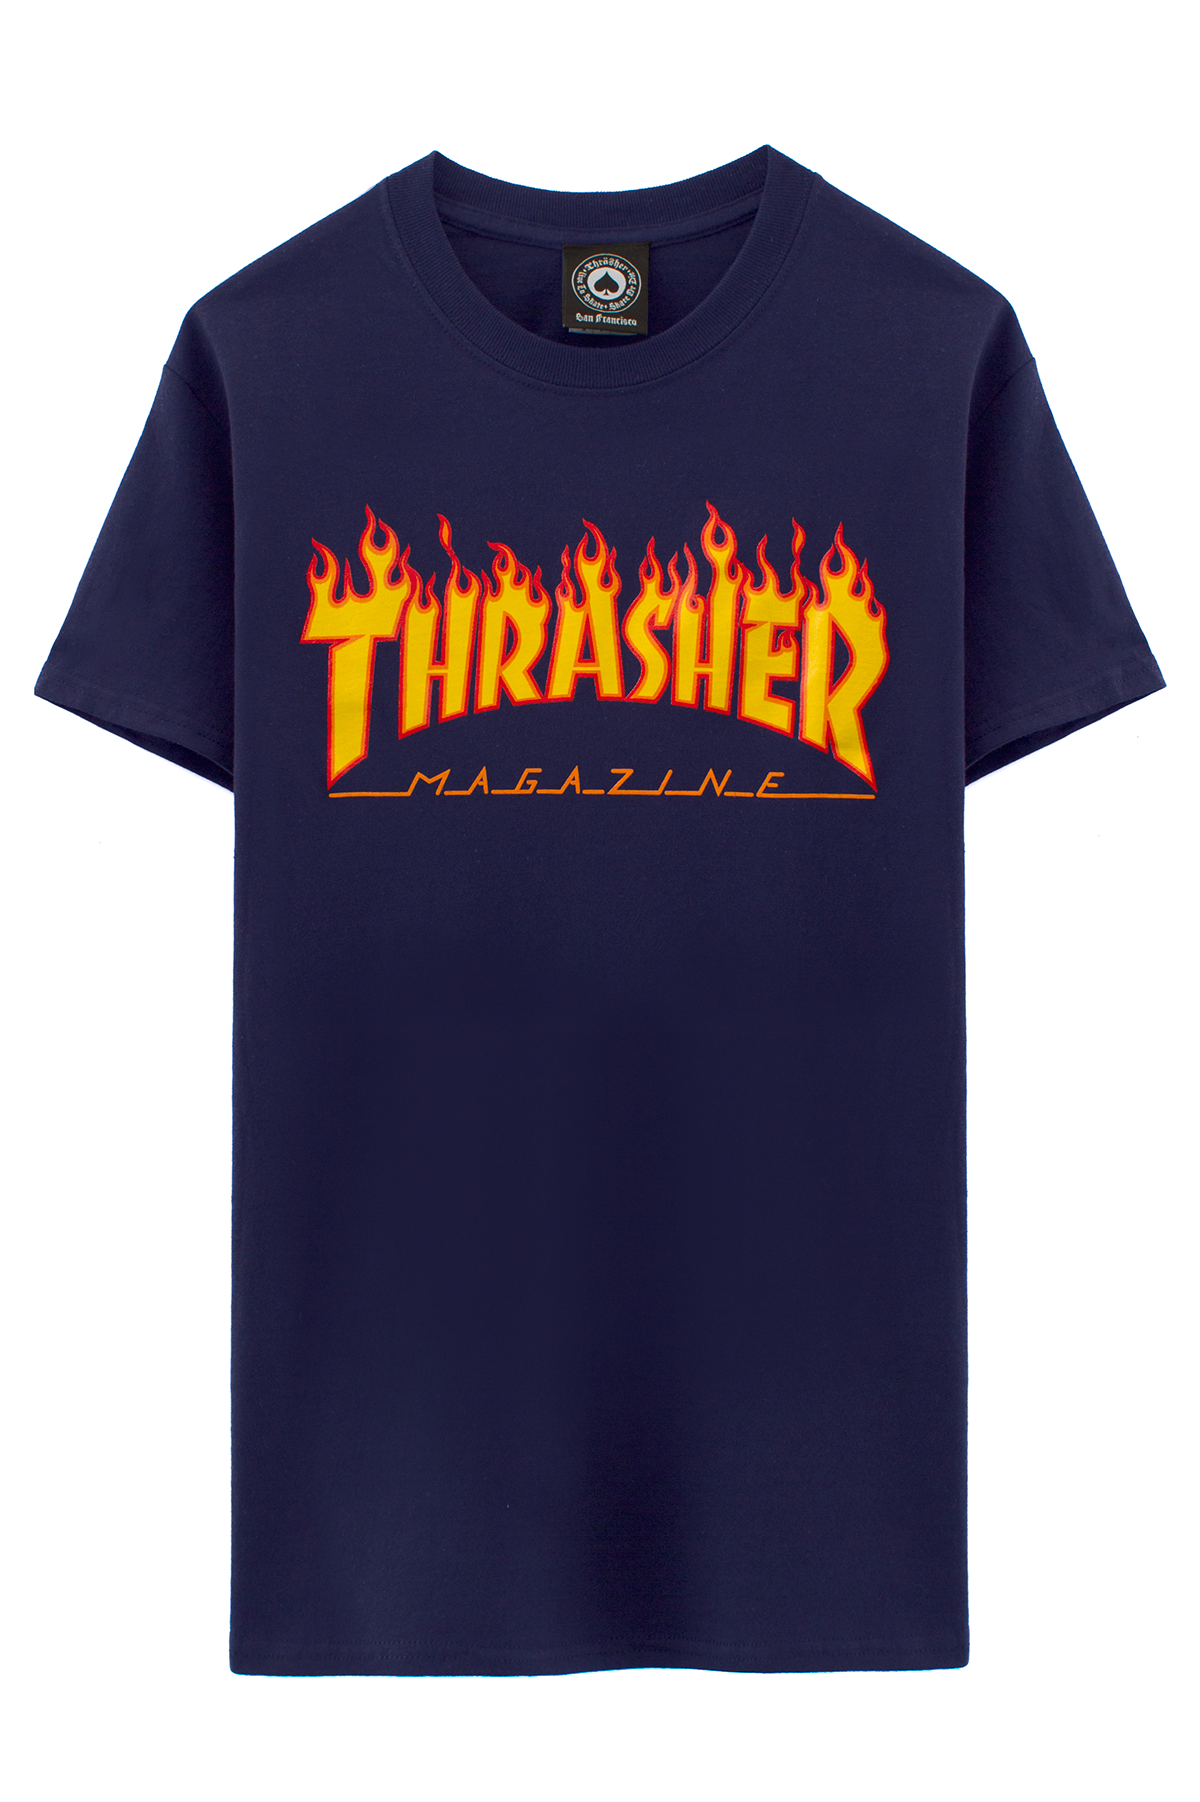 6e5682382952 THRASHER NAVY FLAME LOGO T-SHIRT Navy blue T-shirt with Thrasher flame logo  graphic on chest. 100% cotton. THRASHER Thrasher